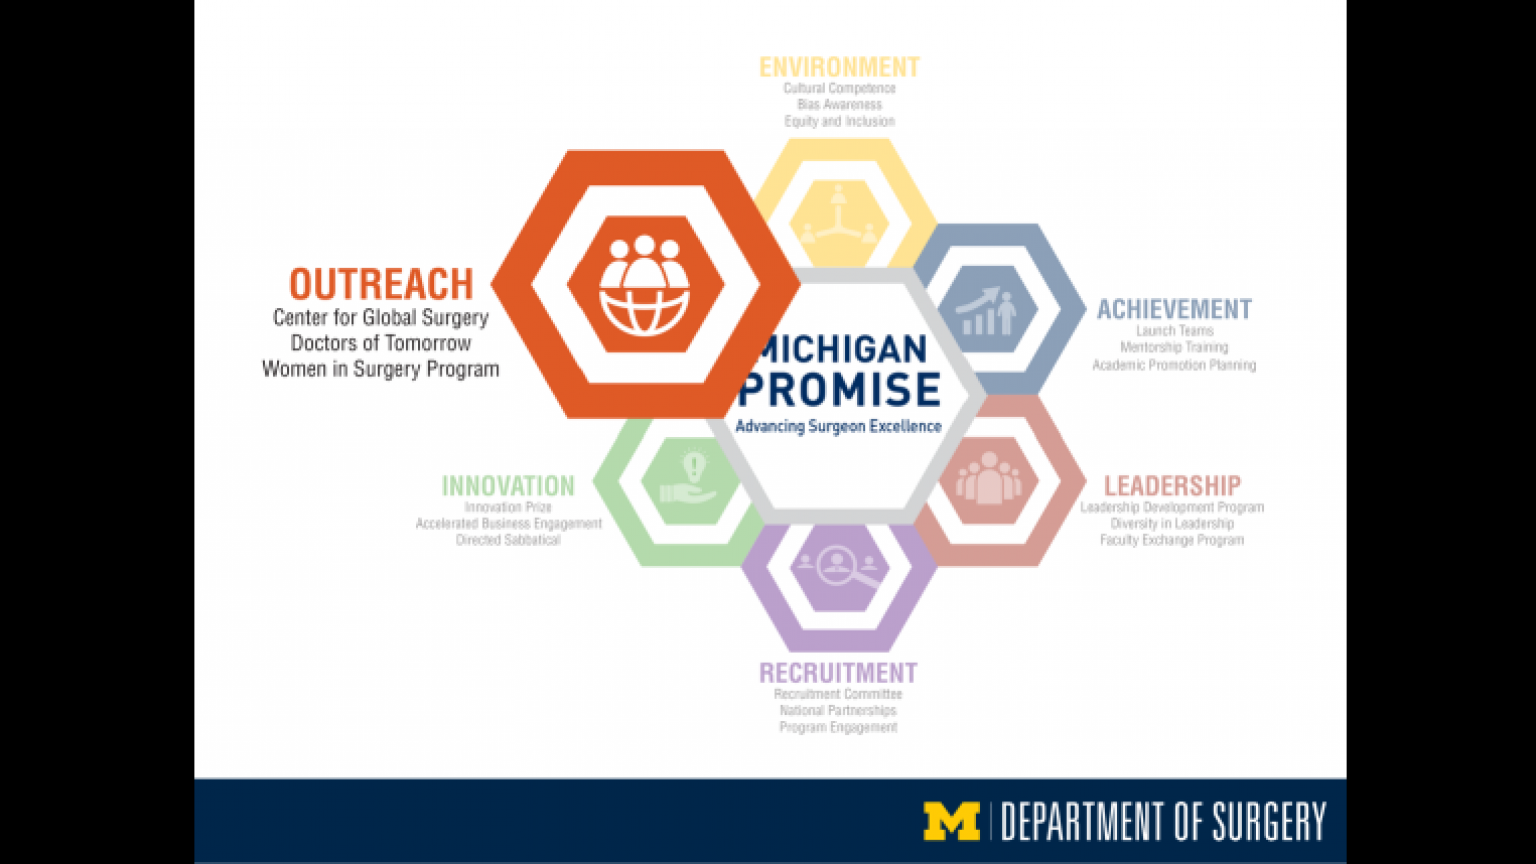 """Michigan Promise graphic highlighting Outreach - thirty-third slide of """"This Is What We Stand For"""" presentation"""